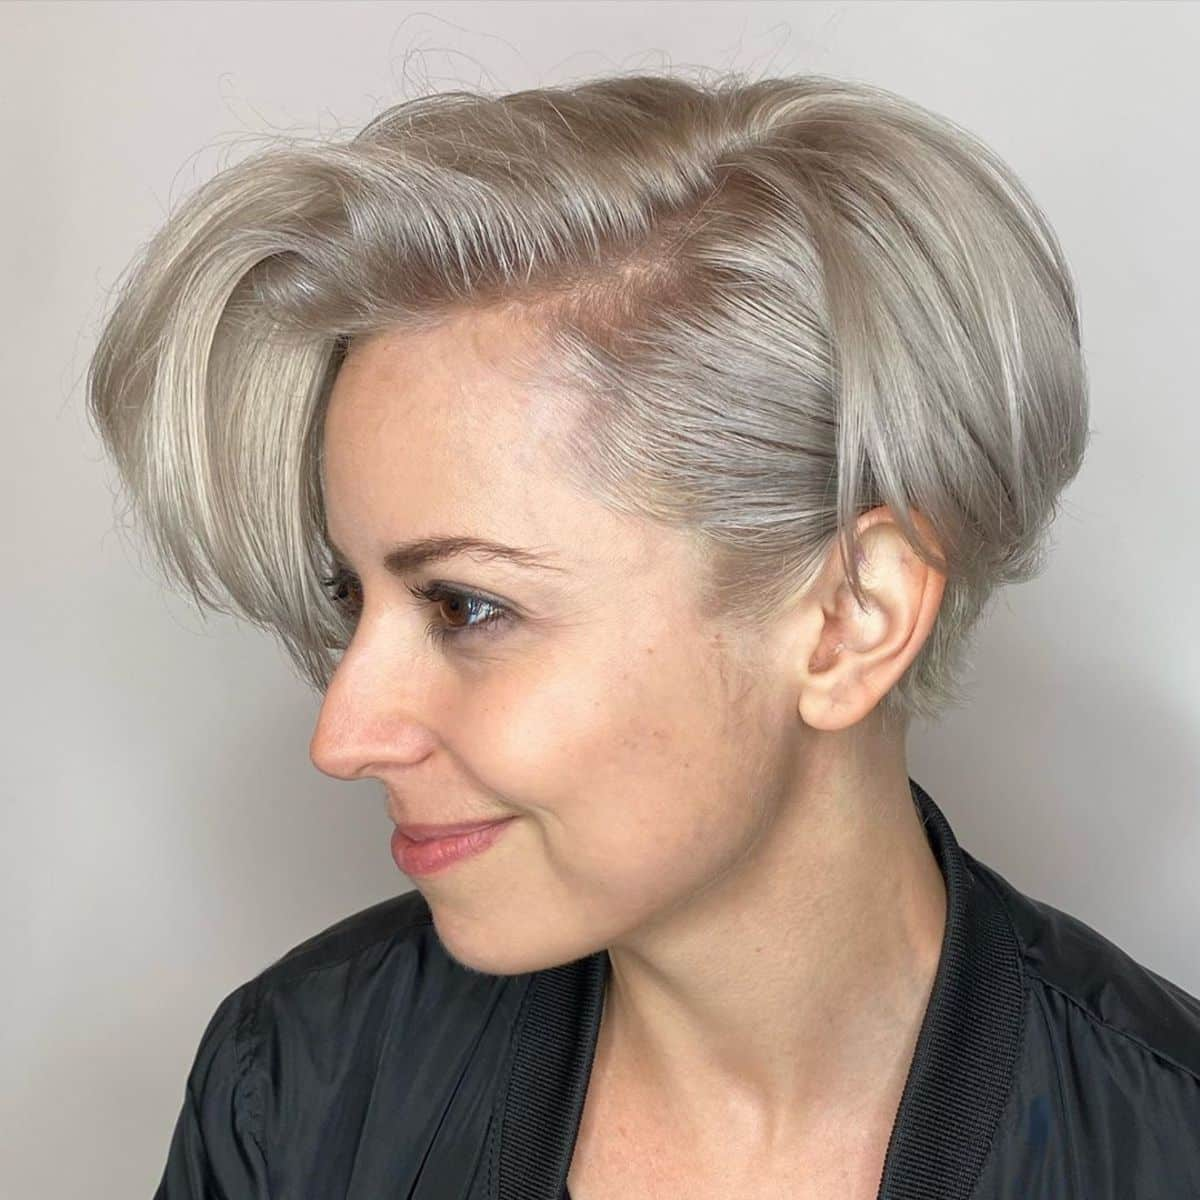 27 Trendiest Ways to Have a Short Blonde Bob Right Now